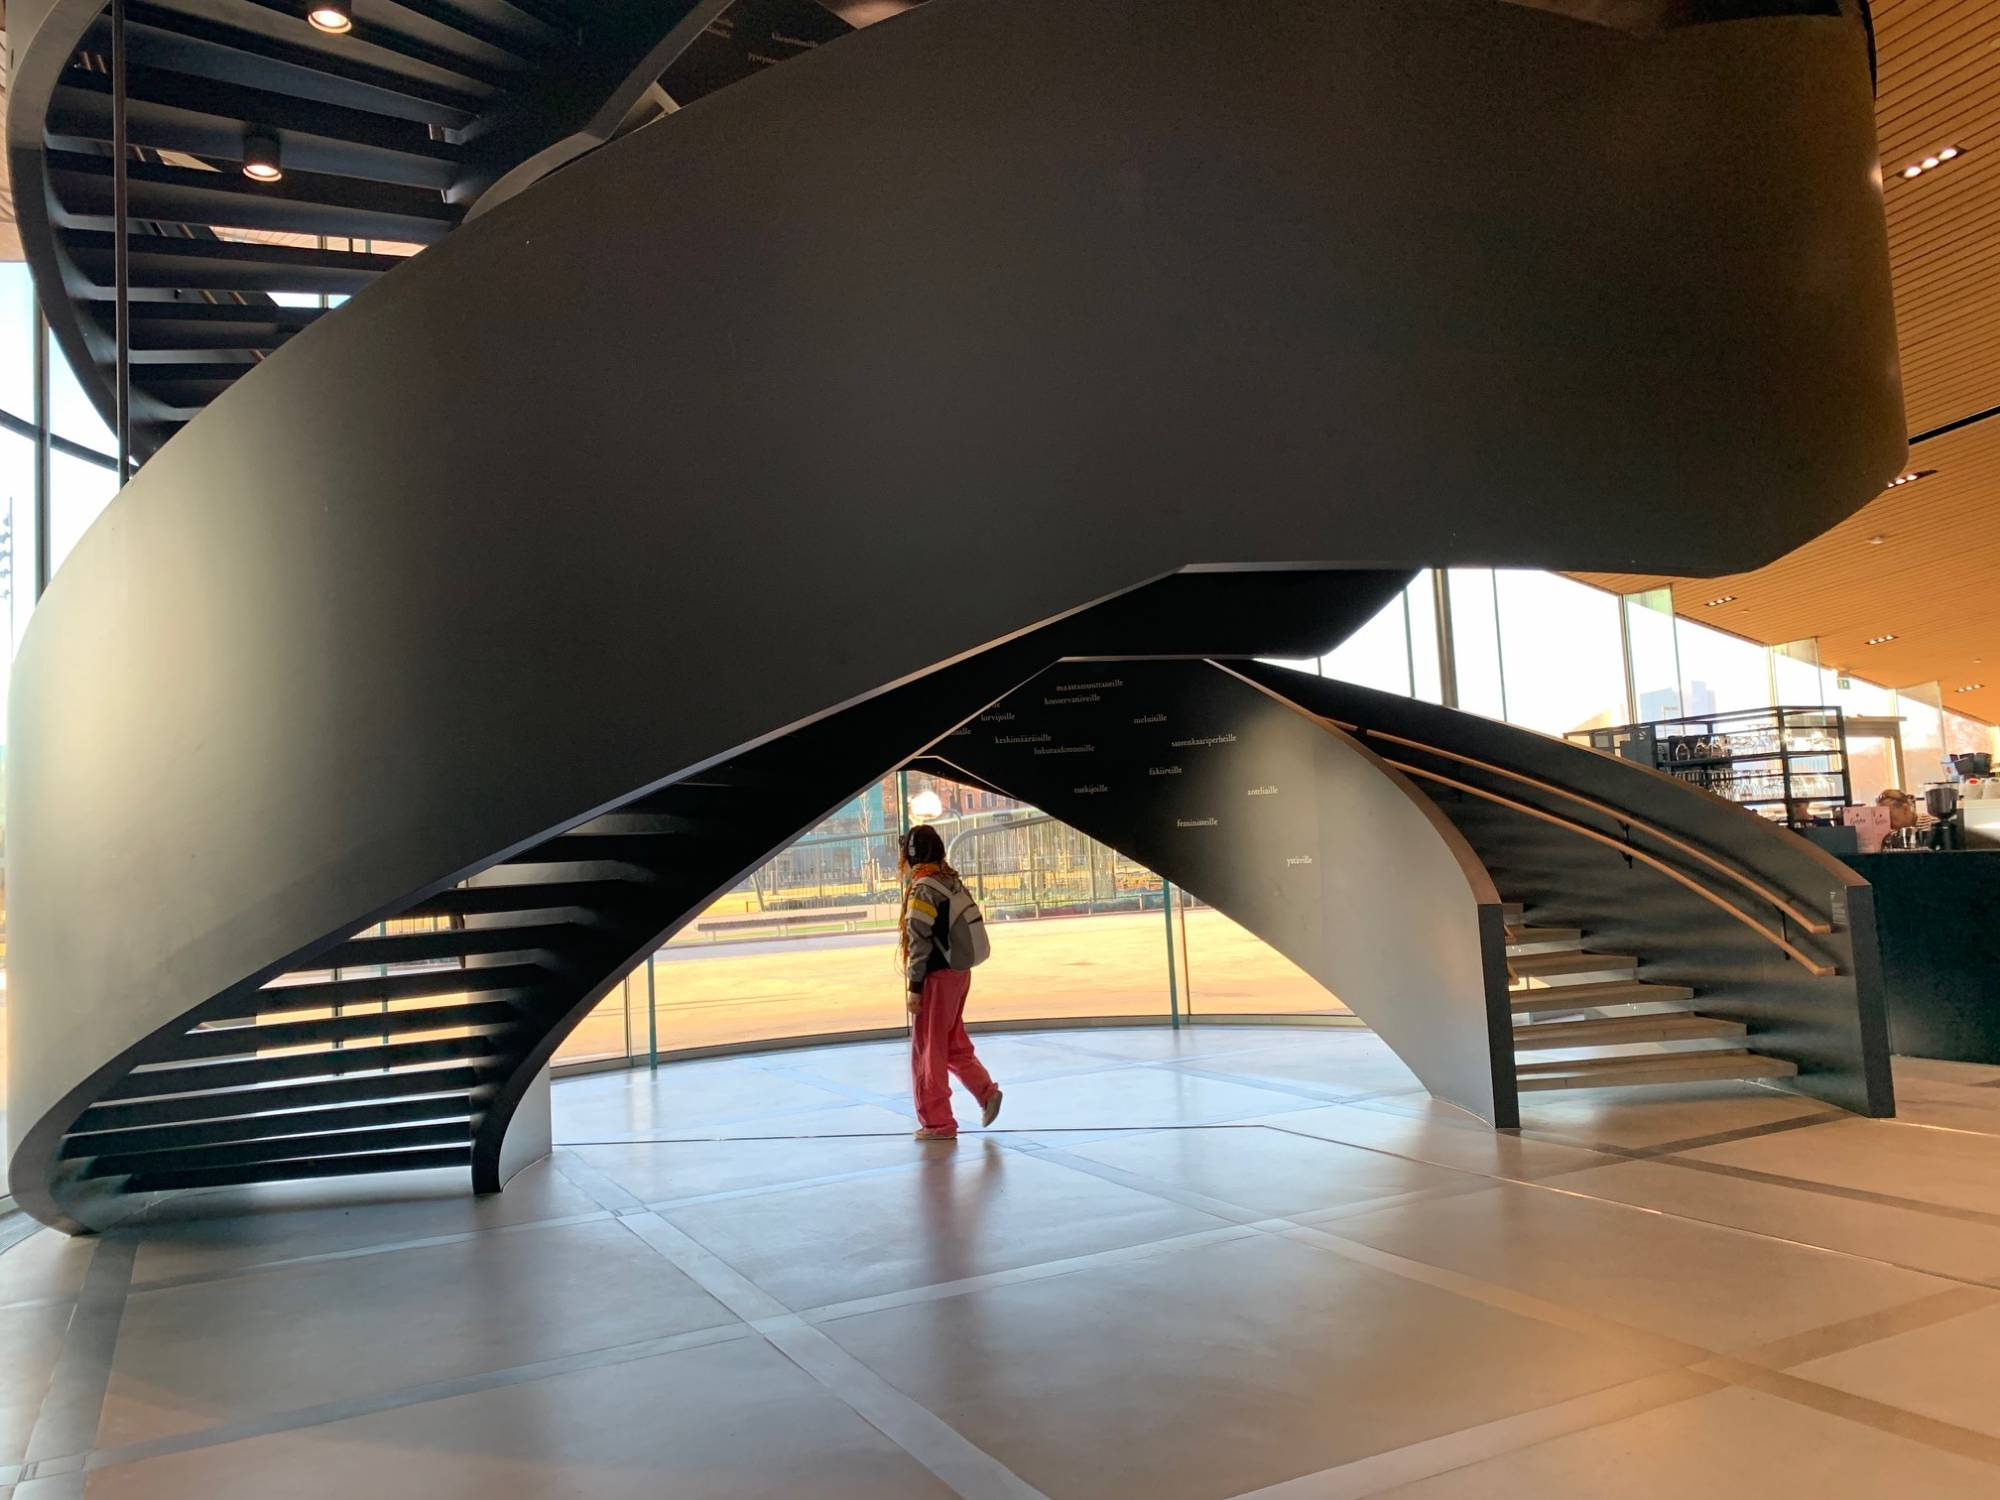 Architecural image of helical staircase at Oodi Library in Helsinki